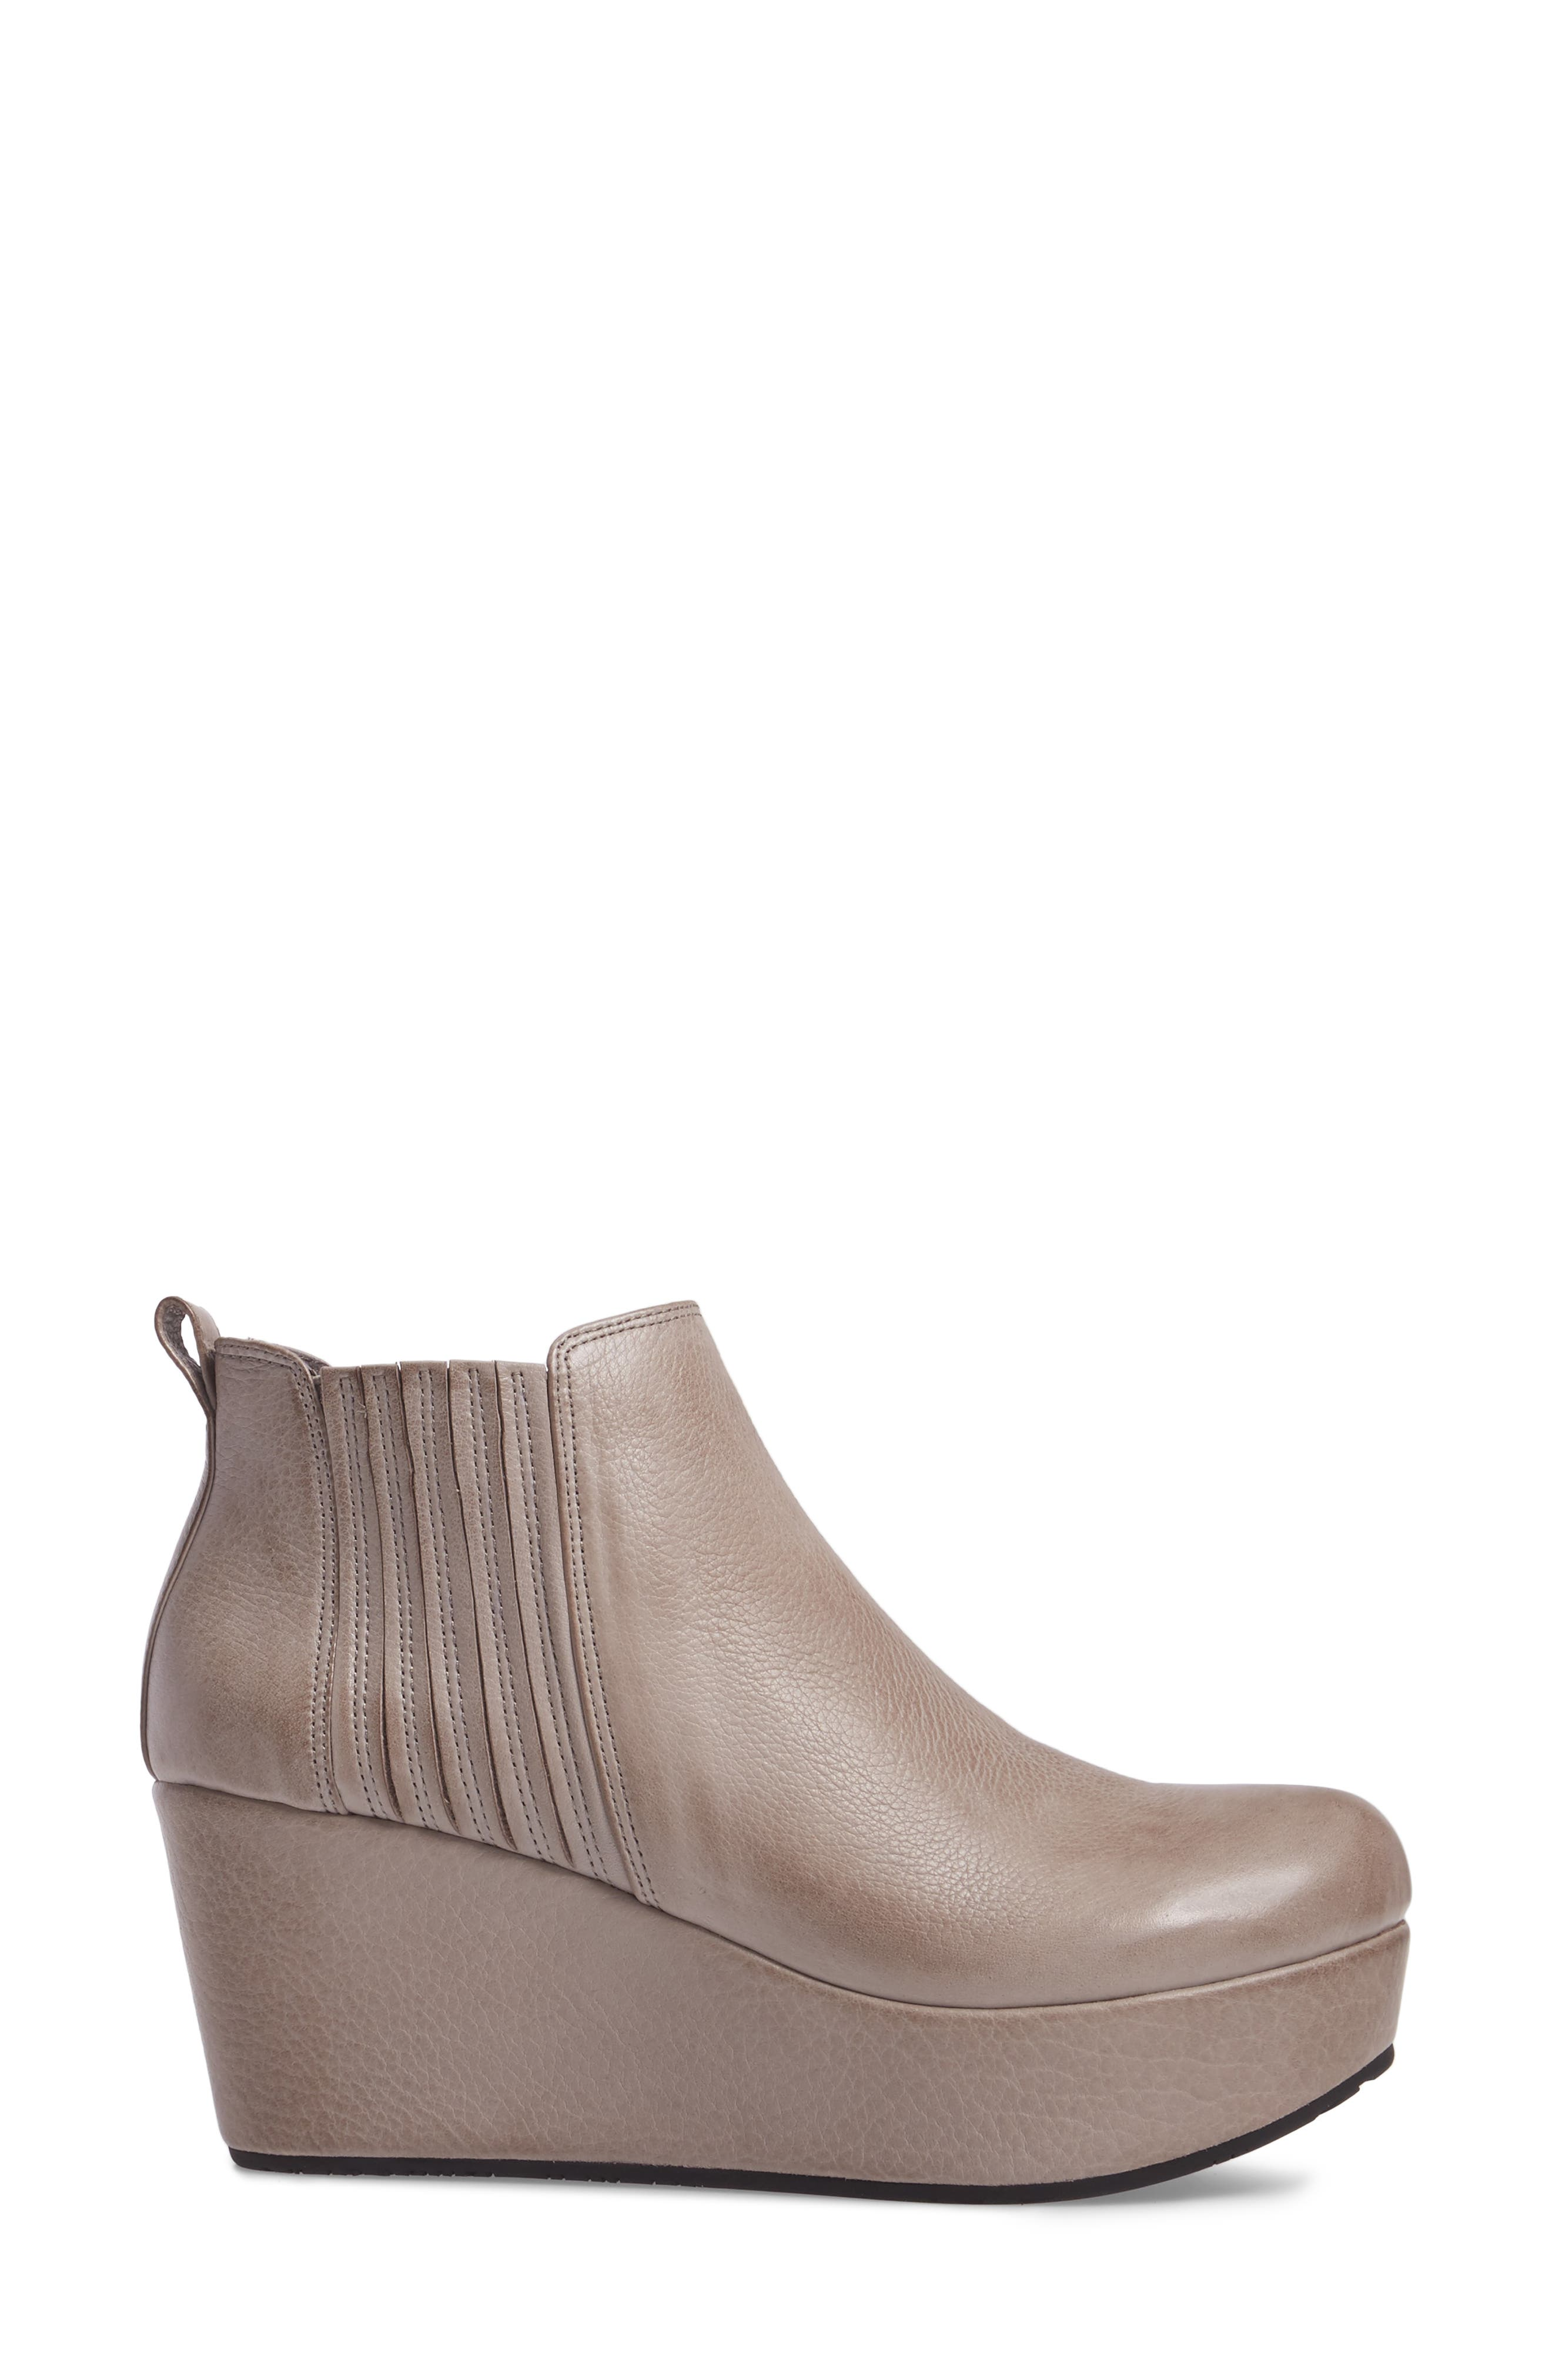 Walden Wedge Bootie,                             Alternate thumbnail 3, color,                             GREY LEATHER